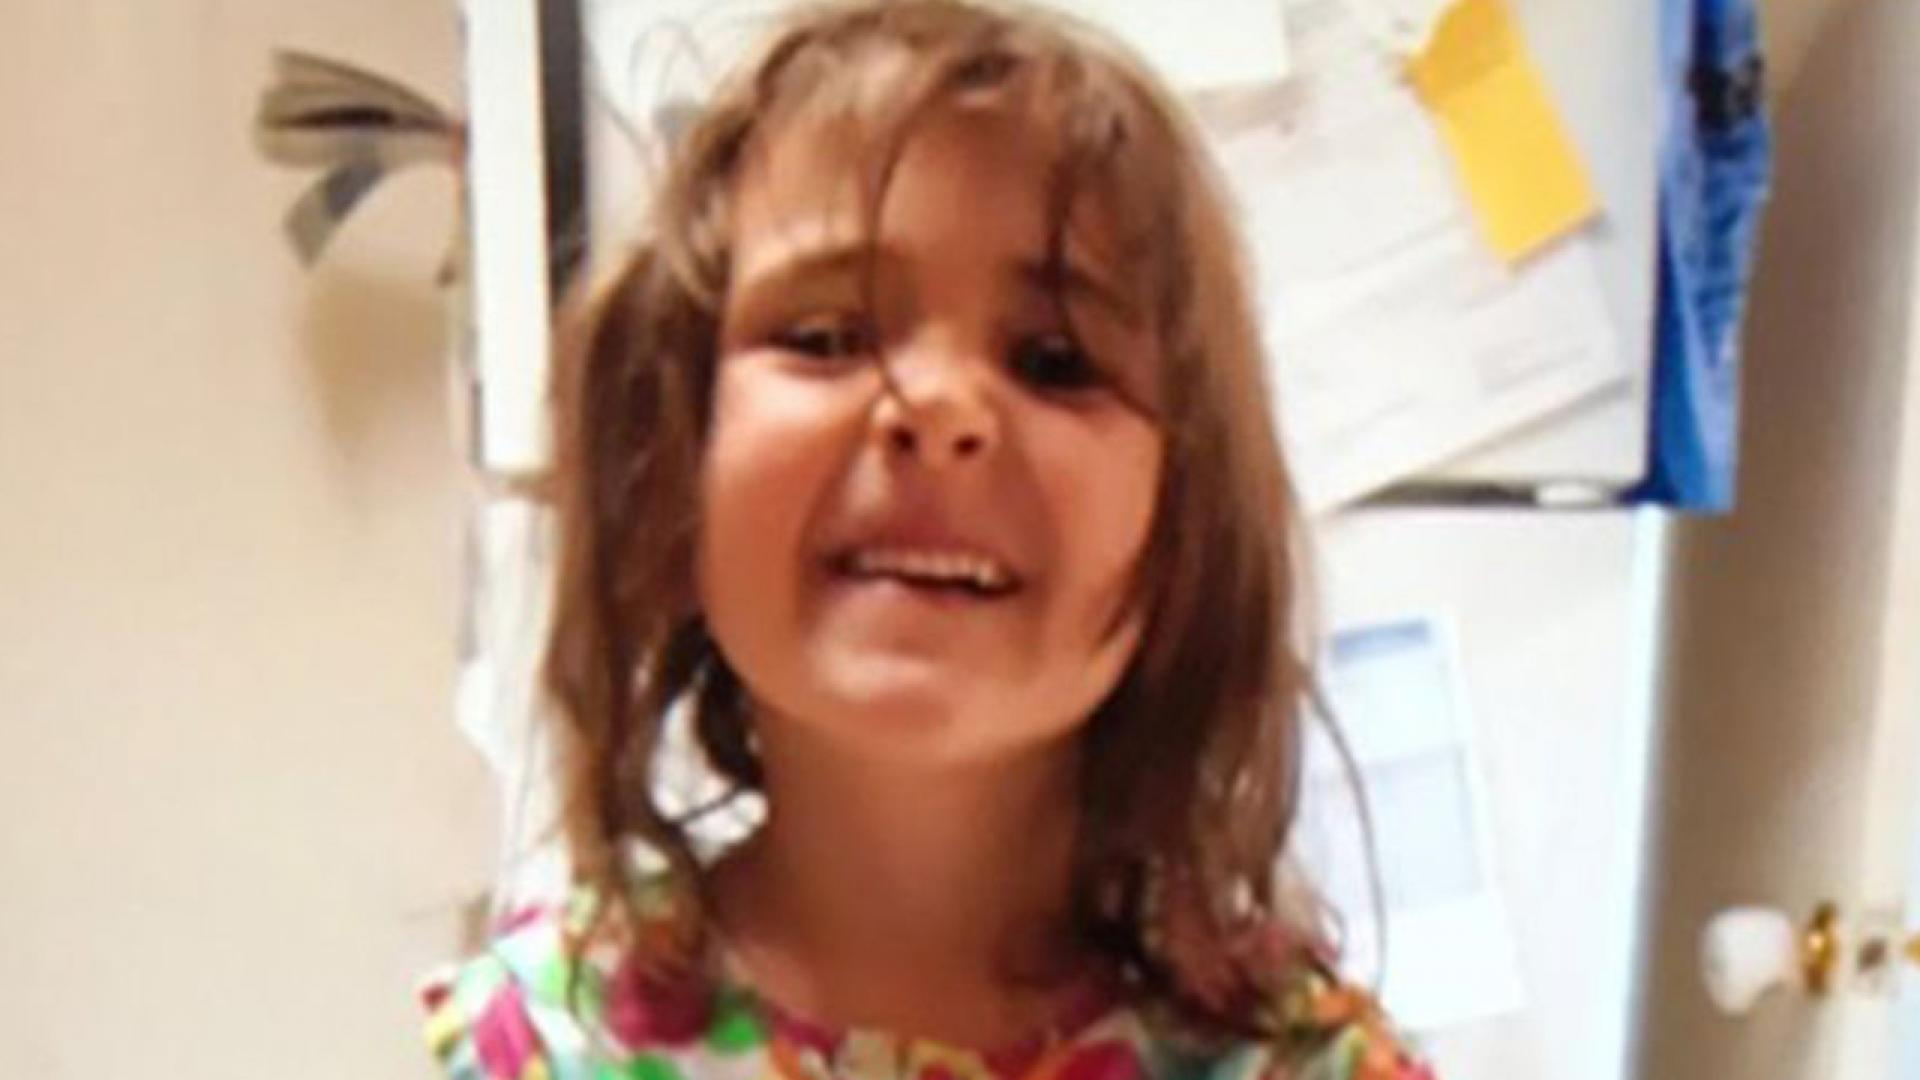 Elizabeth Shelley was last seen at her family's home about 2 a.m. Saturday, several hours after her mother's brother, Alex Whipple, arrived to stay the night, Logan City police said.